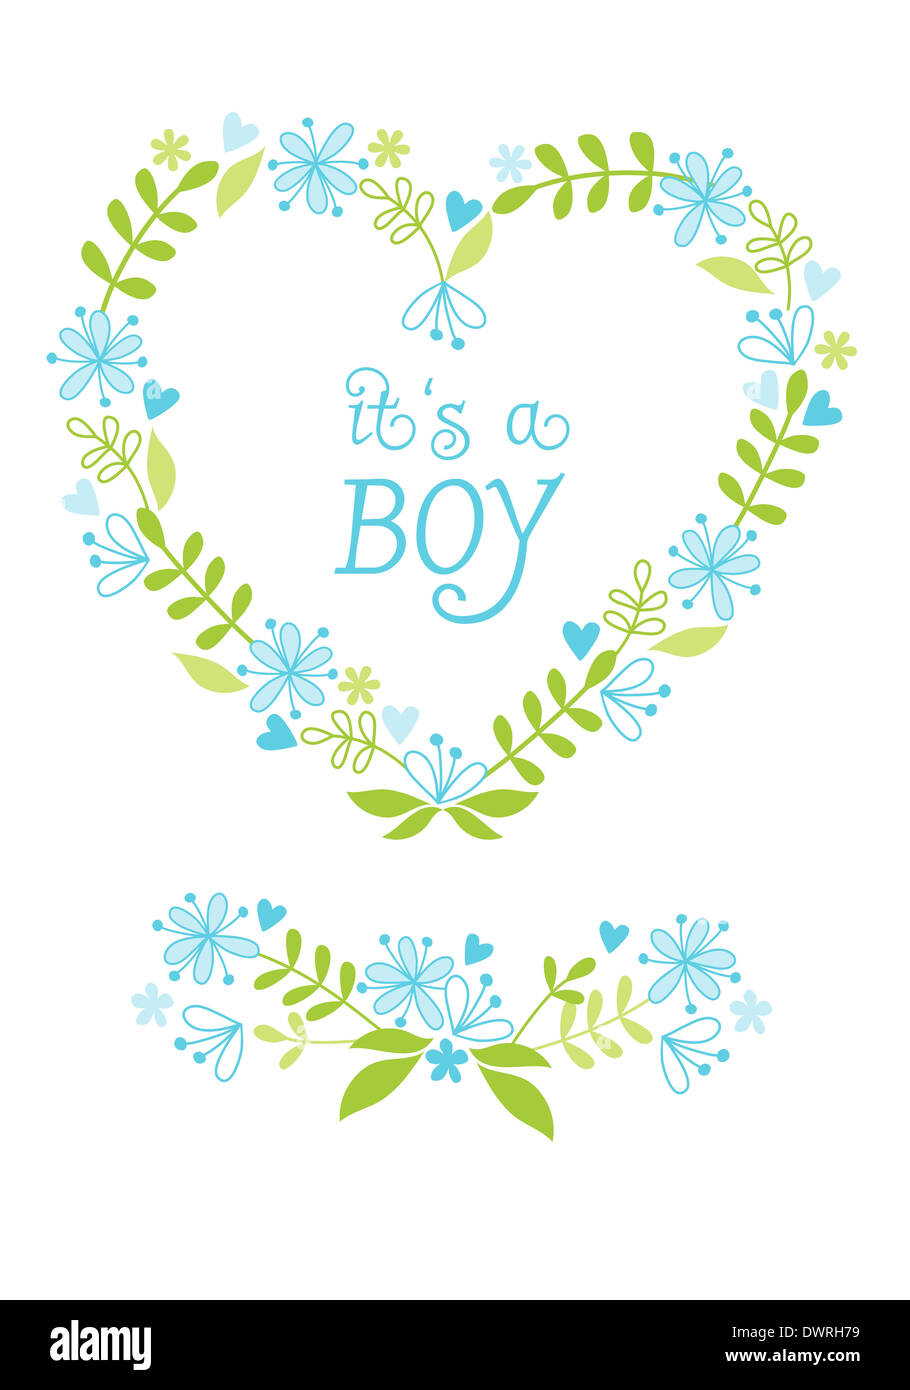 Baby Boy Blue Green Heart Flower Frame Floral Stock Photos & Baby ...